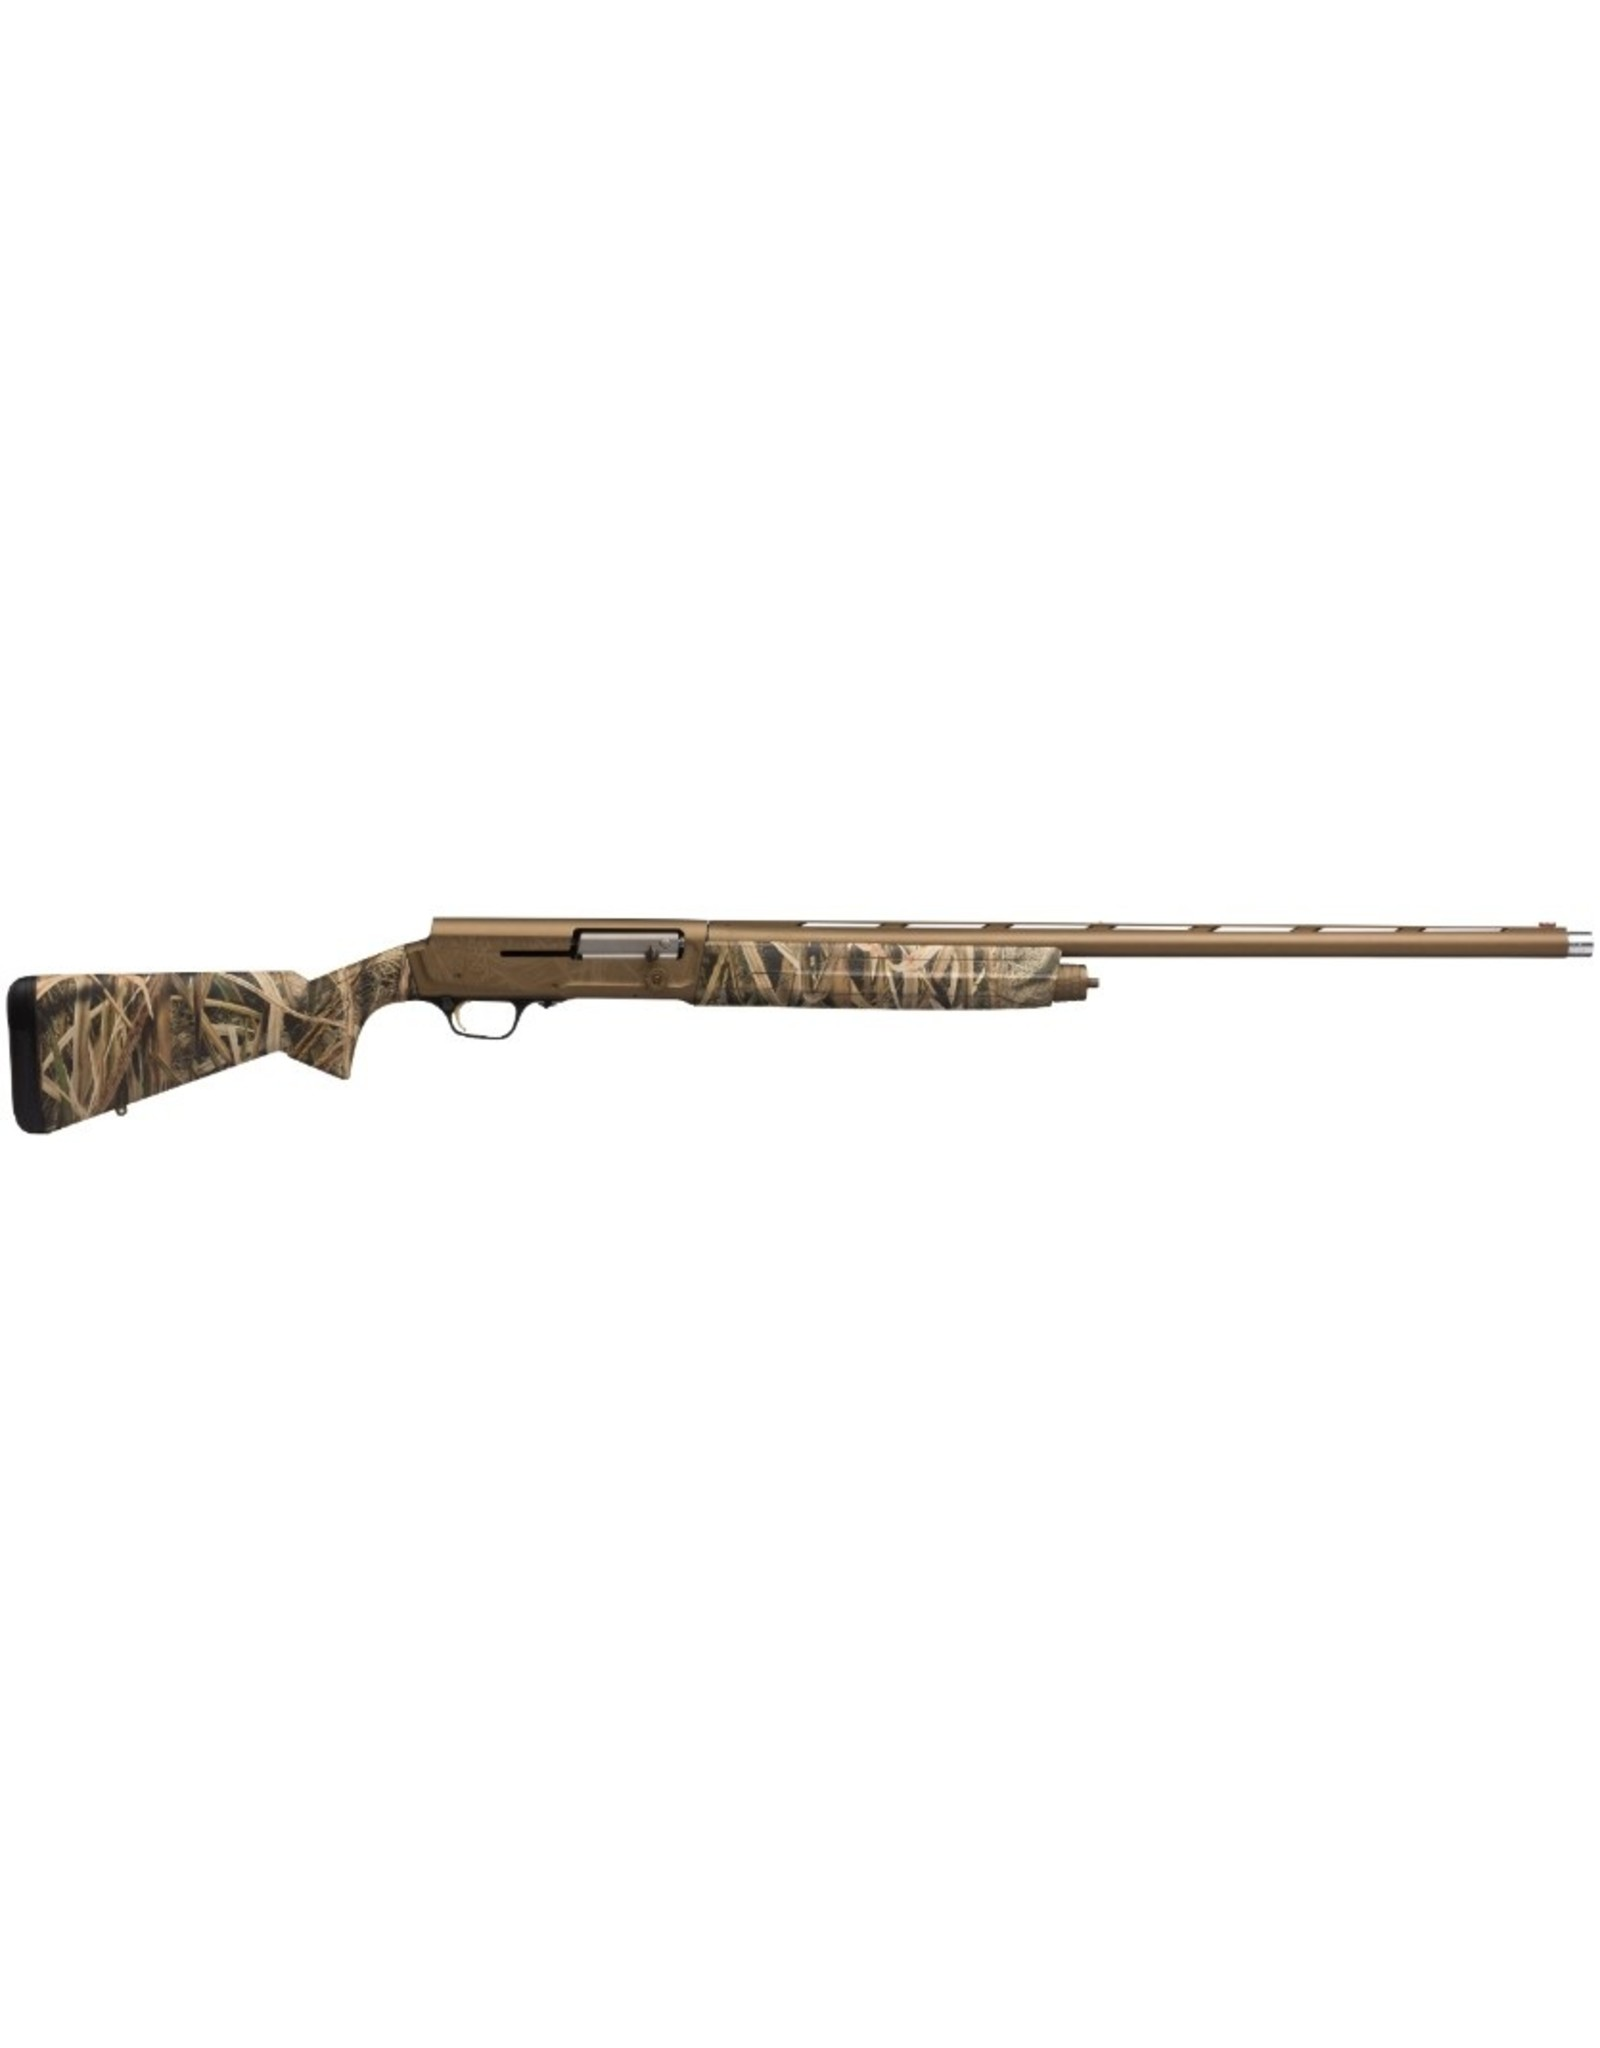 "Browning Browning Wicked Wing A-5 12 Ga 28"" bbl 3"" Mossy Oak"